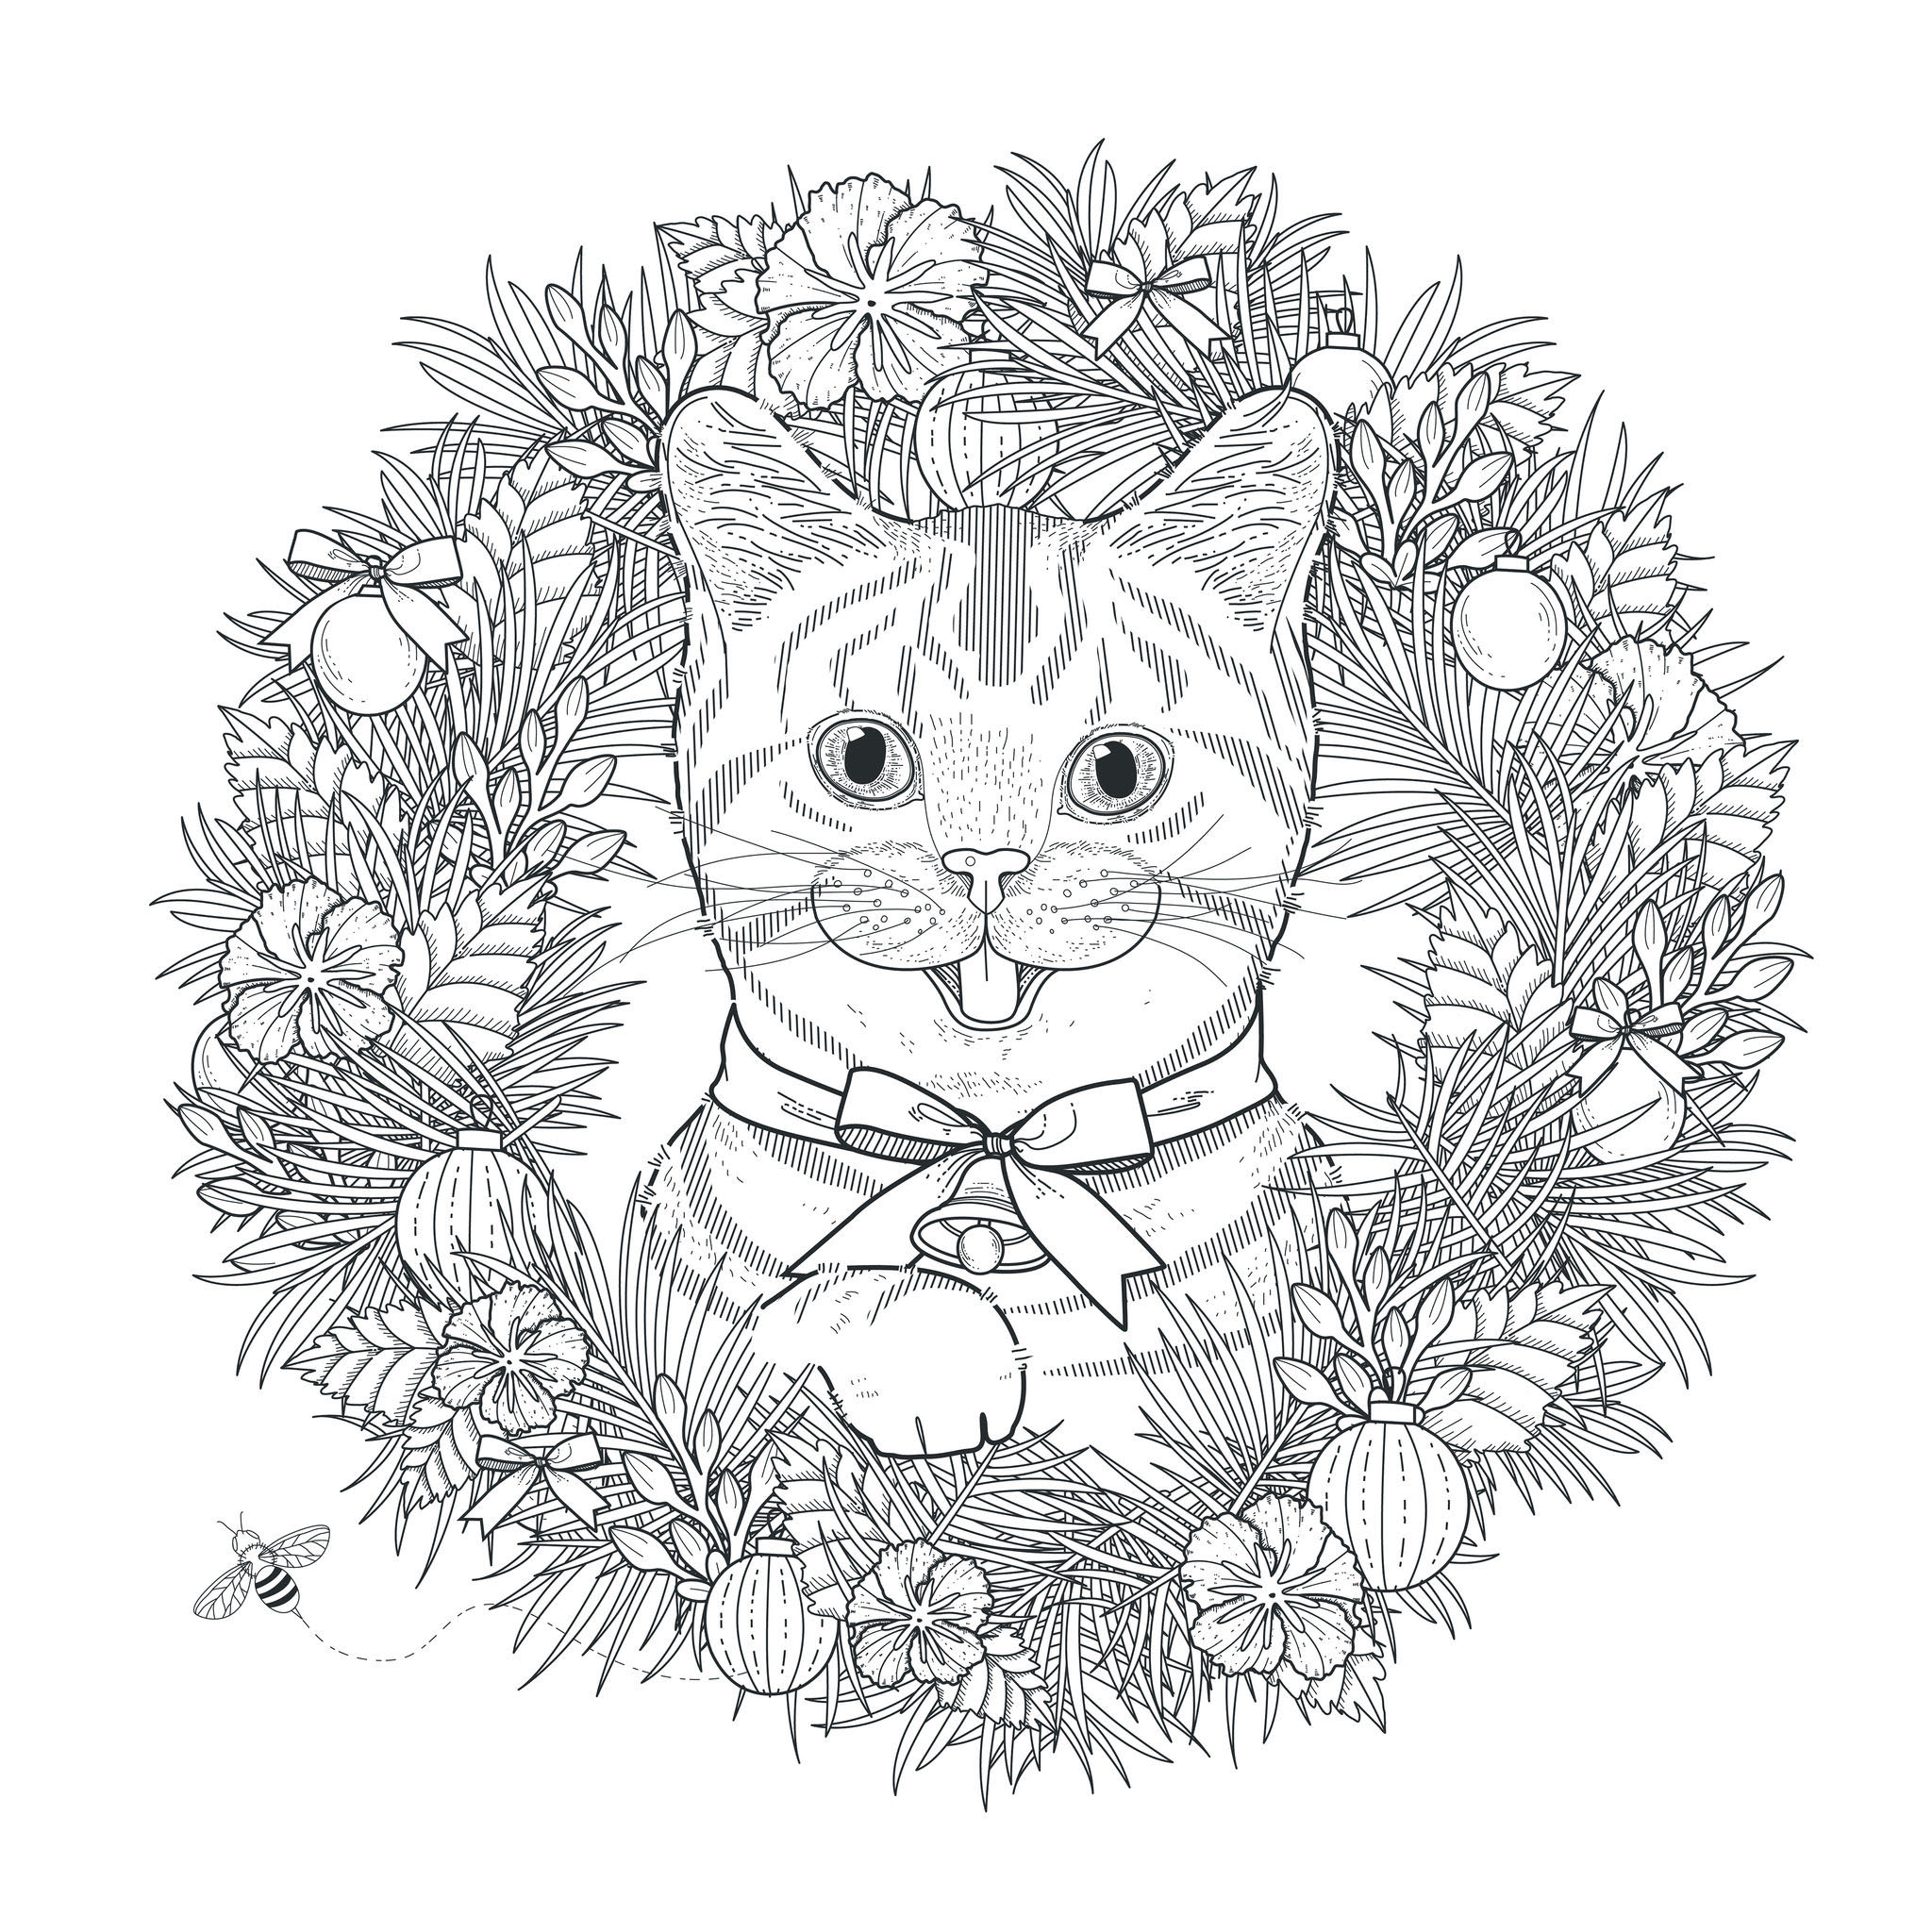 Cat coloring page to download for free : Beautiful mandala with cat head